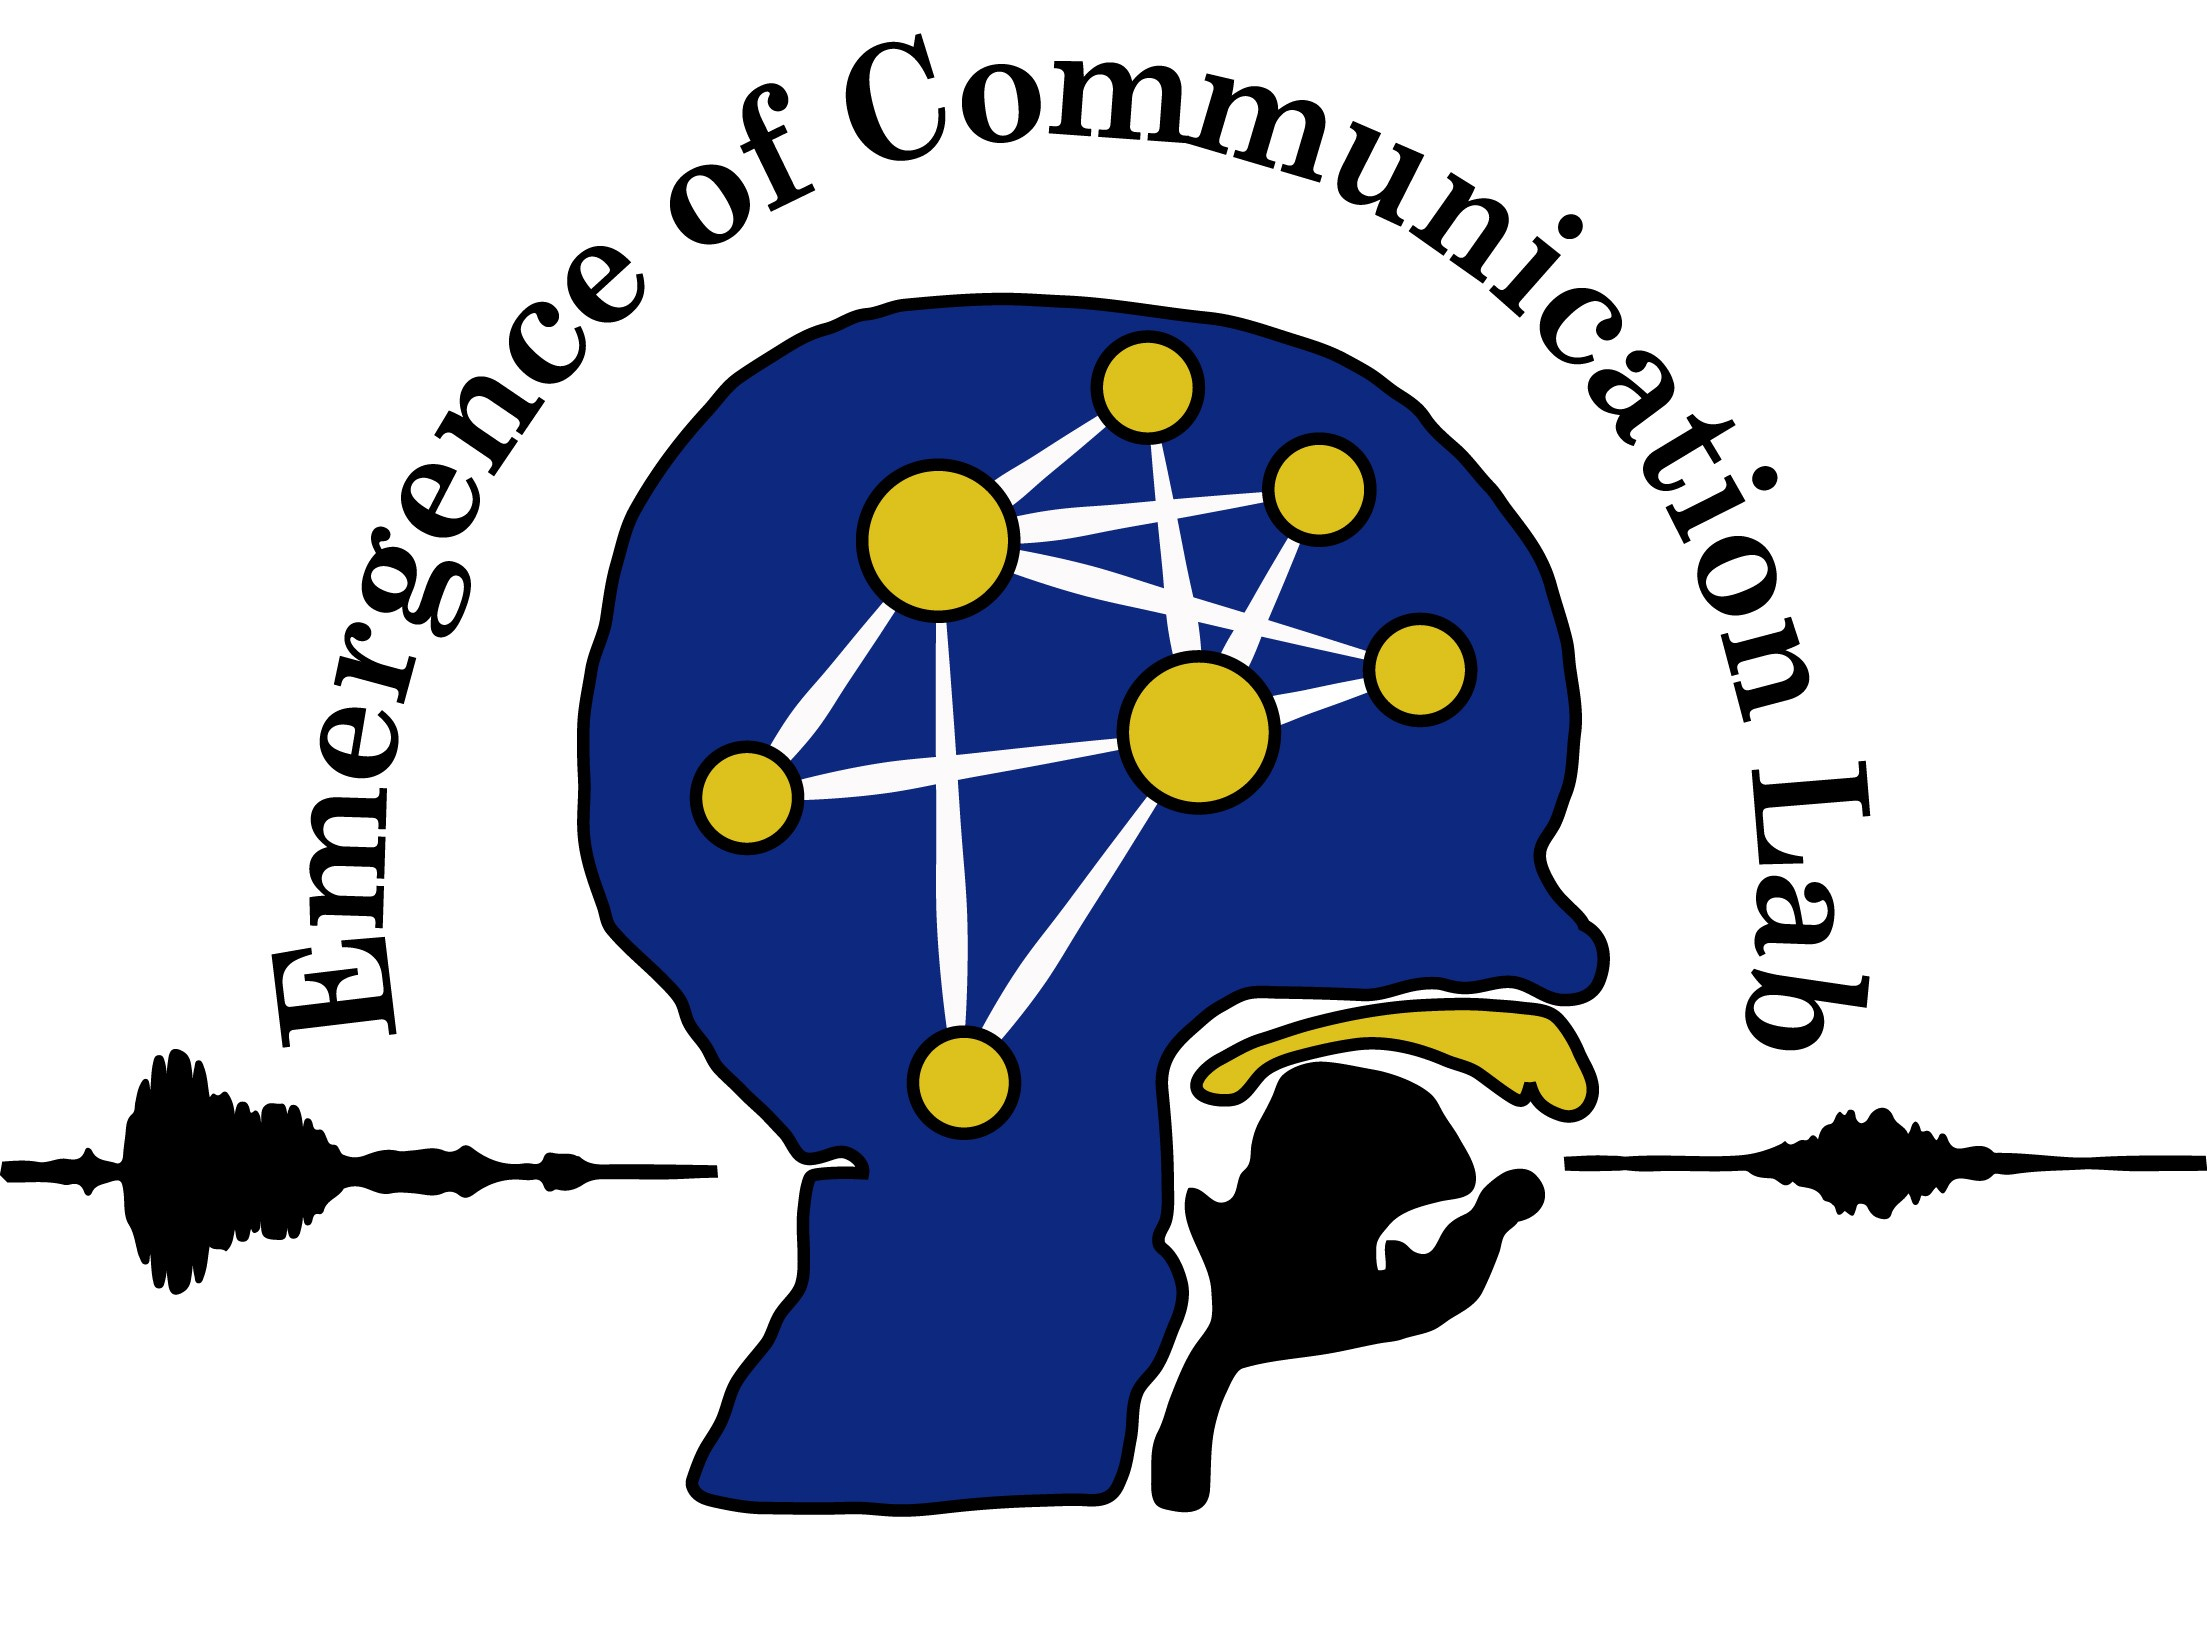 Emergence of Communication Lab logo